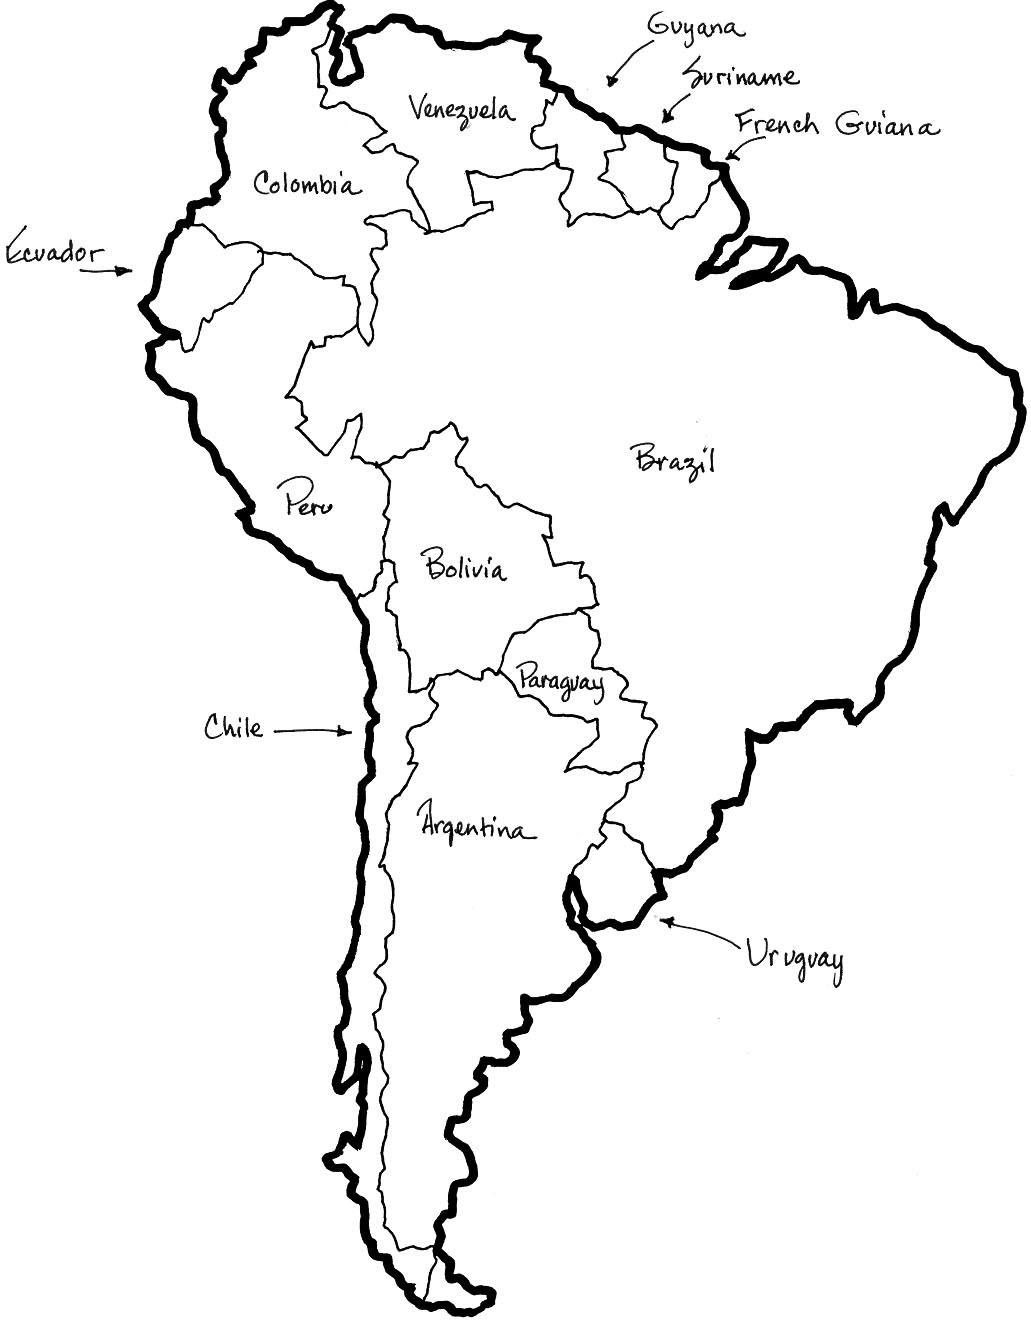 North America Coloring Page At Getcolorings